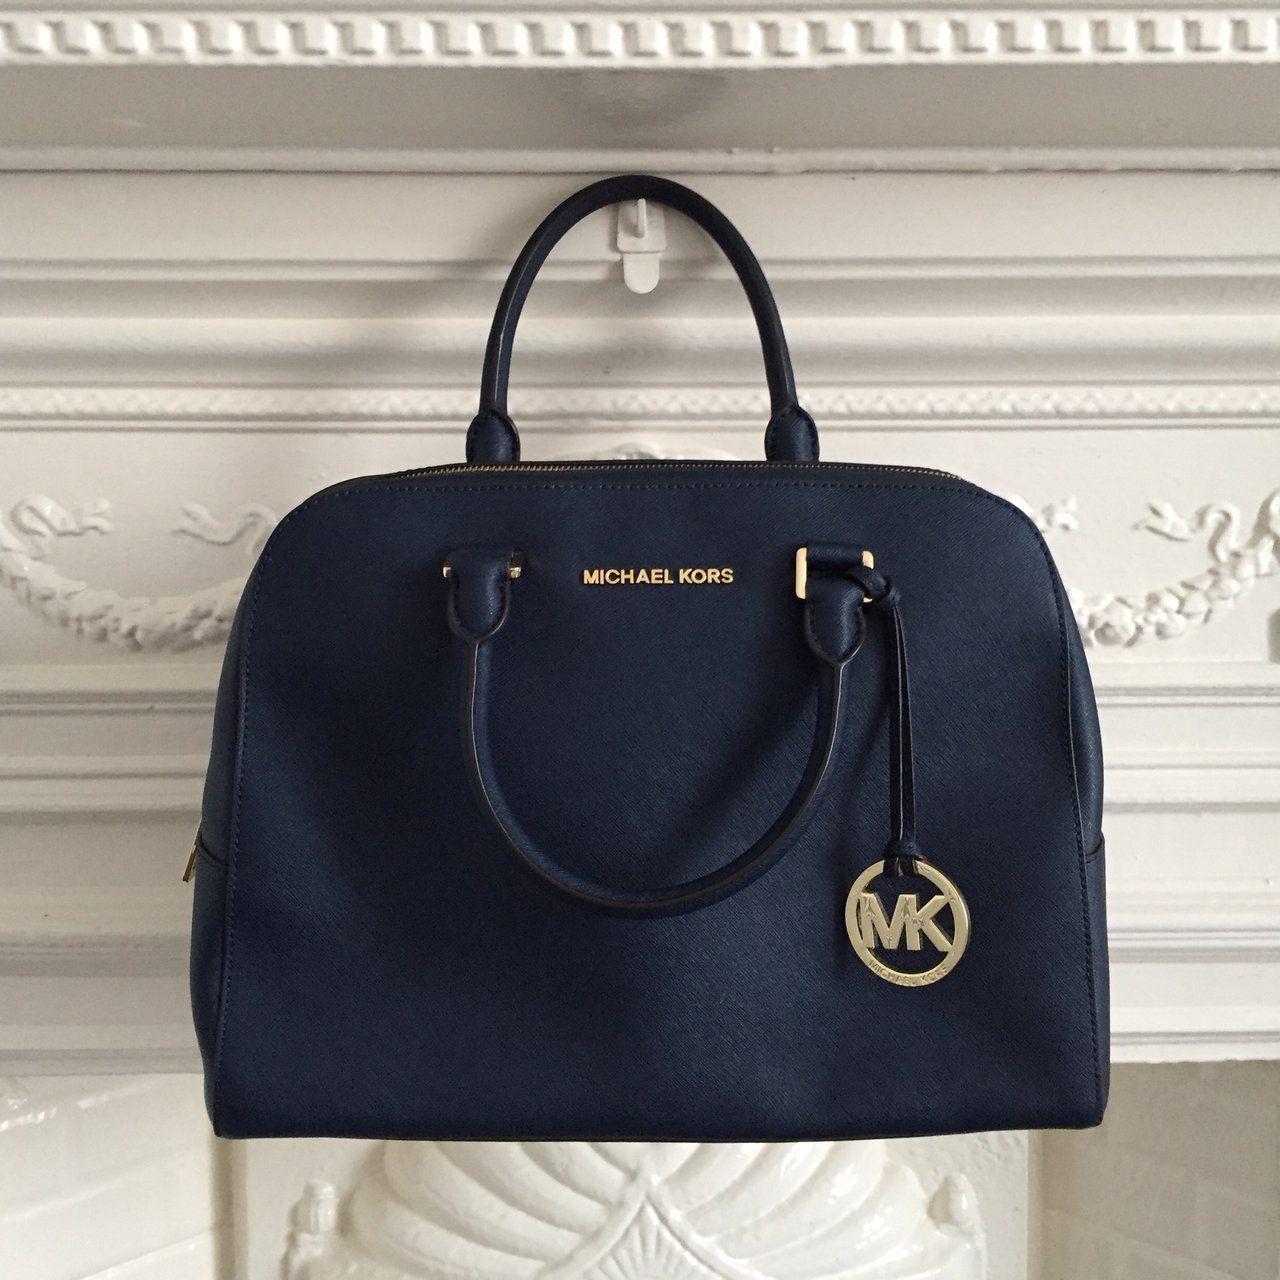 7673e0afa0be MICHAEL KORS original navy 100% leather handbag shoulder bag. Comes with a  detachable